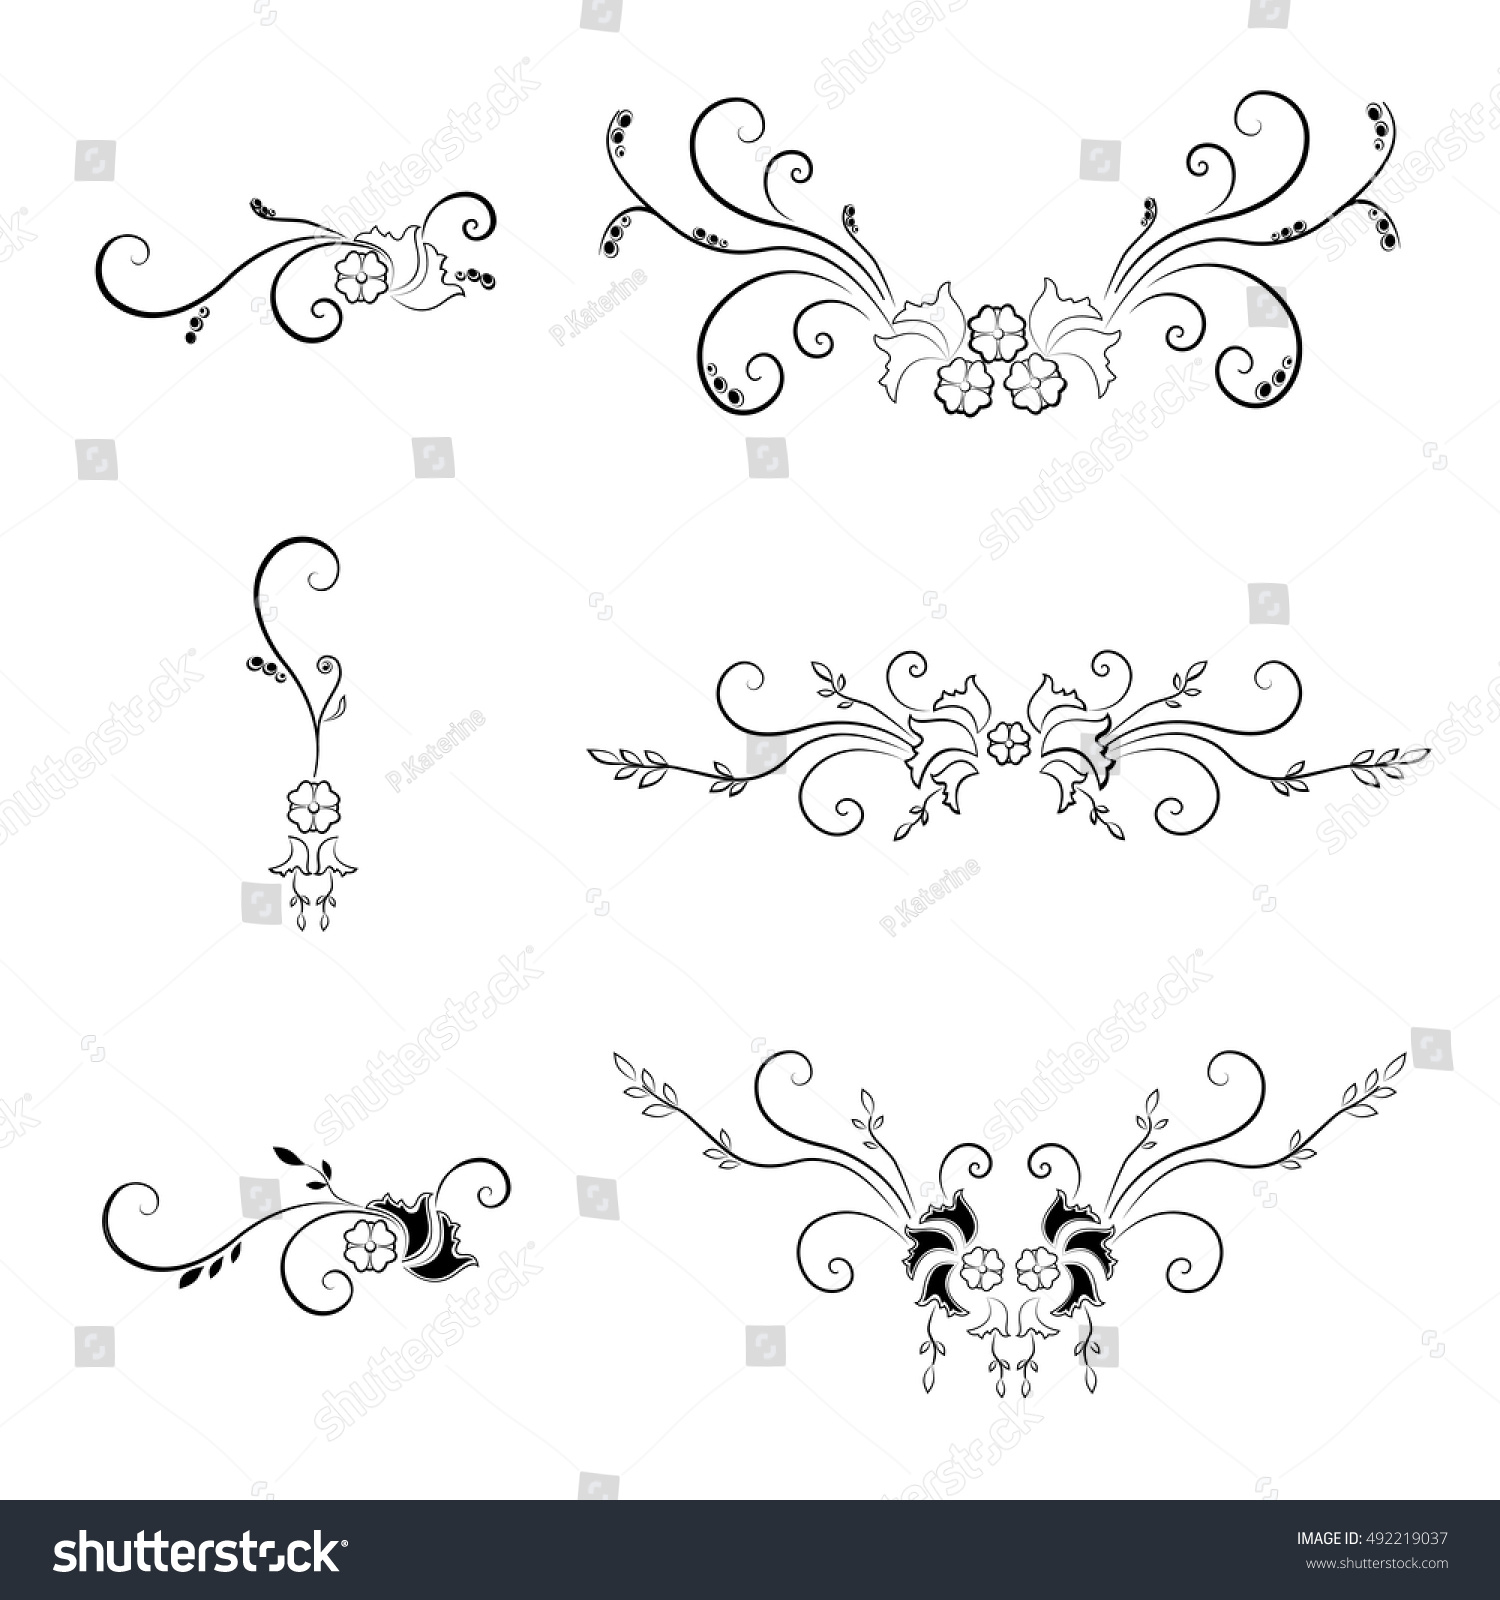 Set Decorative Filigree Elements Collection Abstraction Stock Vector ...